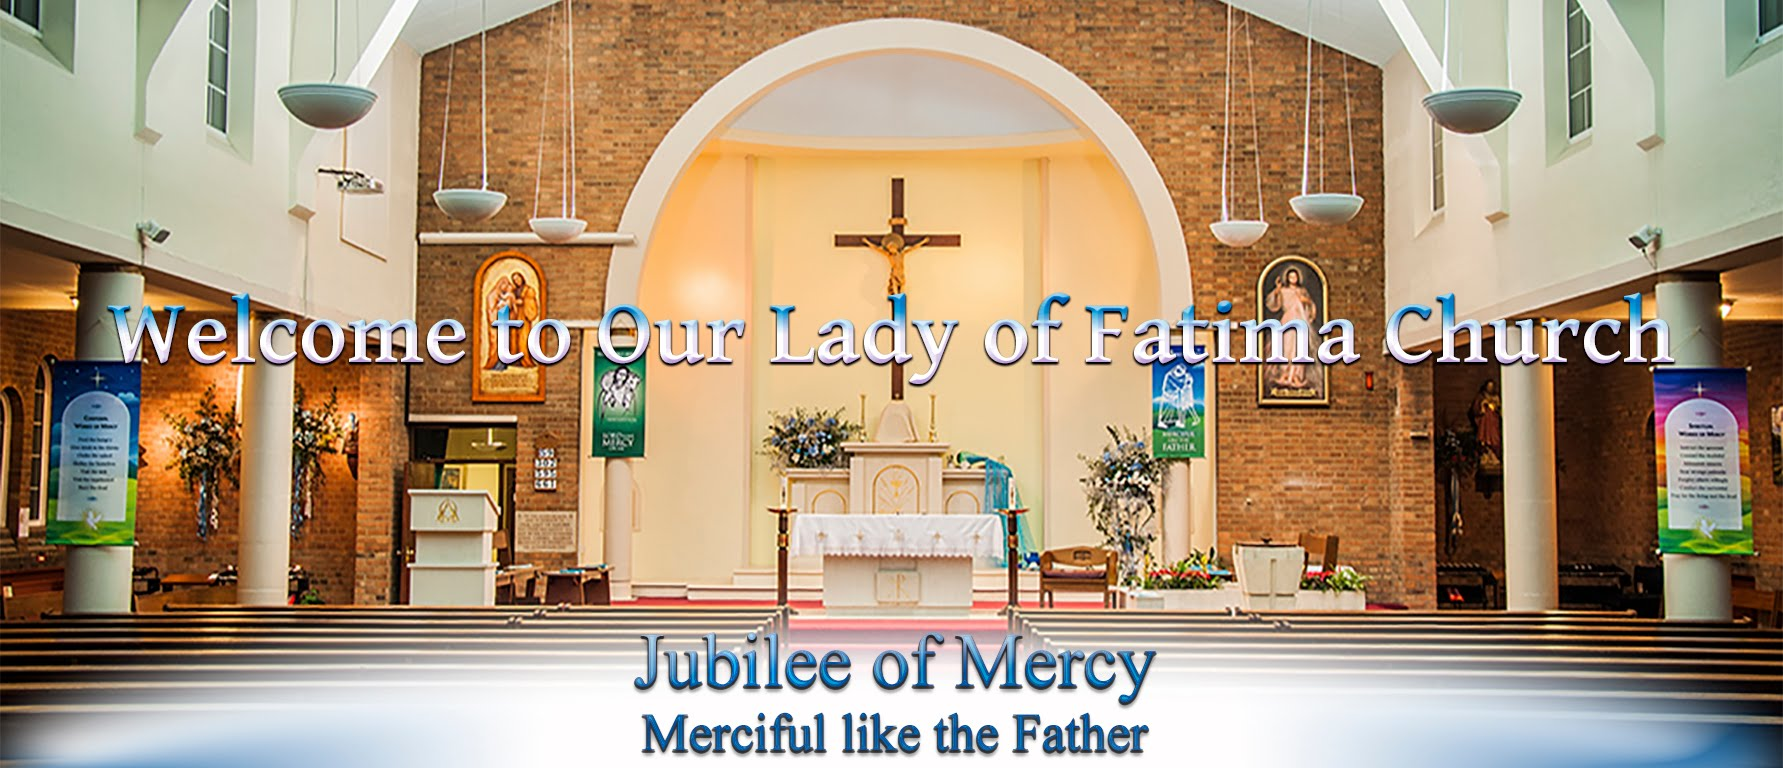 Our Lady of Fatima Church Home